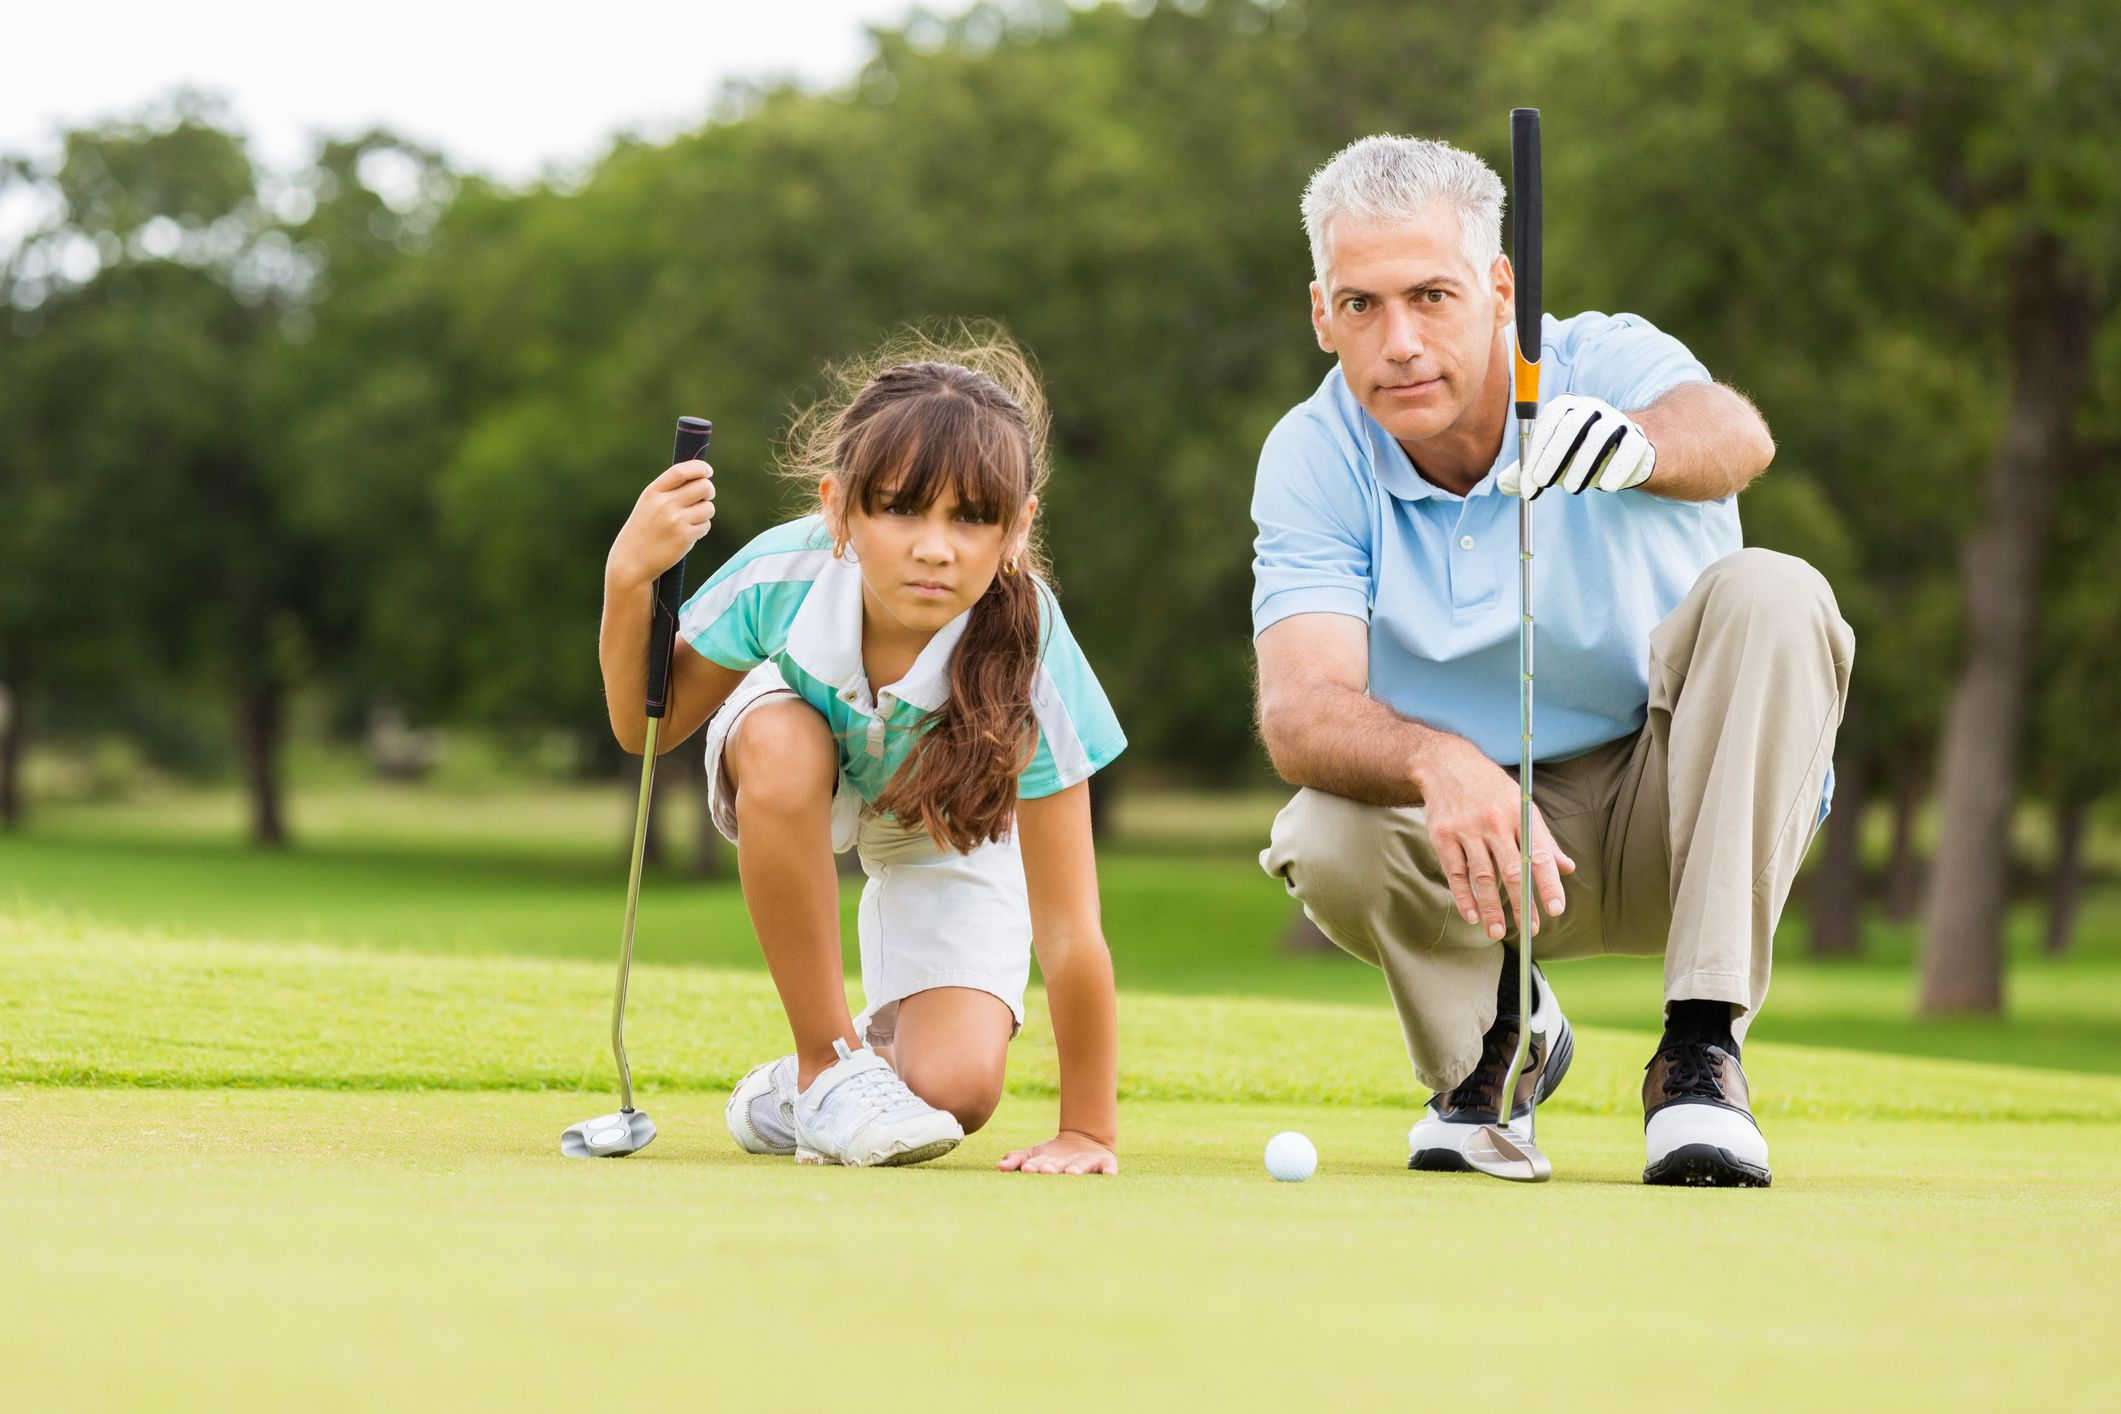 girl-and-man-golfing-5c244e1cc9e77c0001ace7be